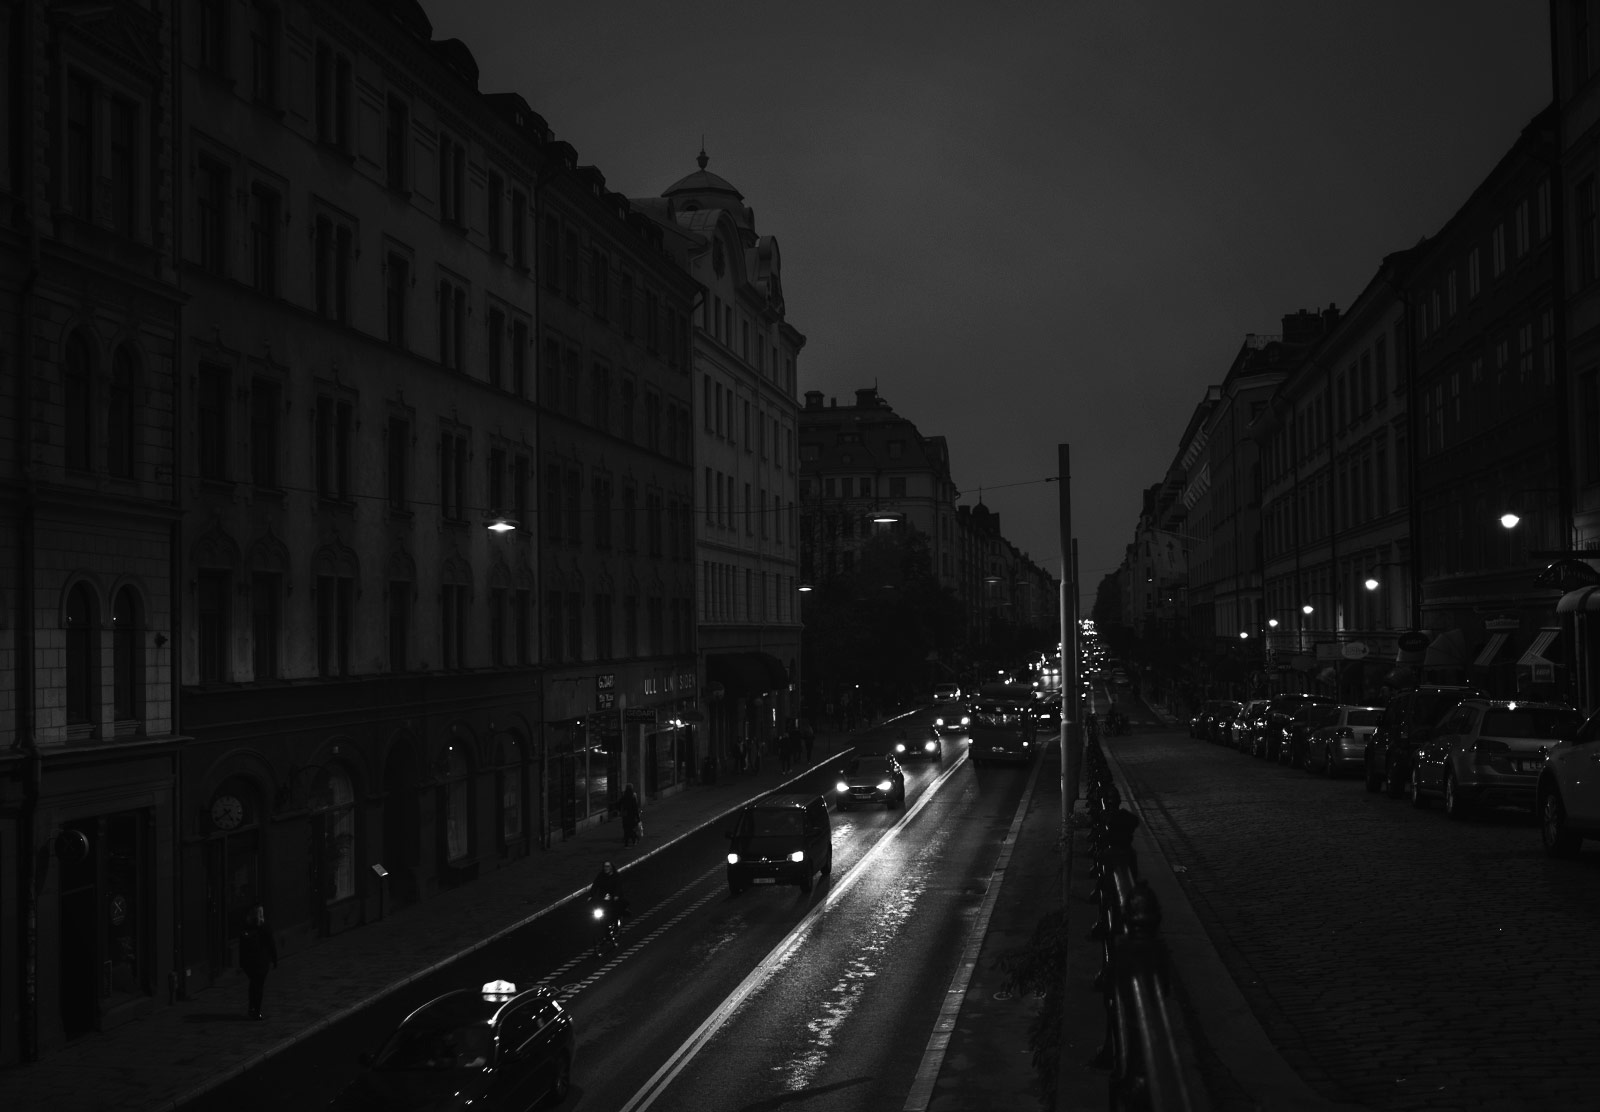 Dark streets with no lights